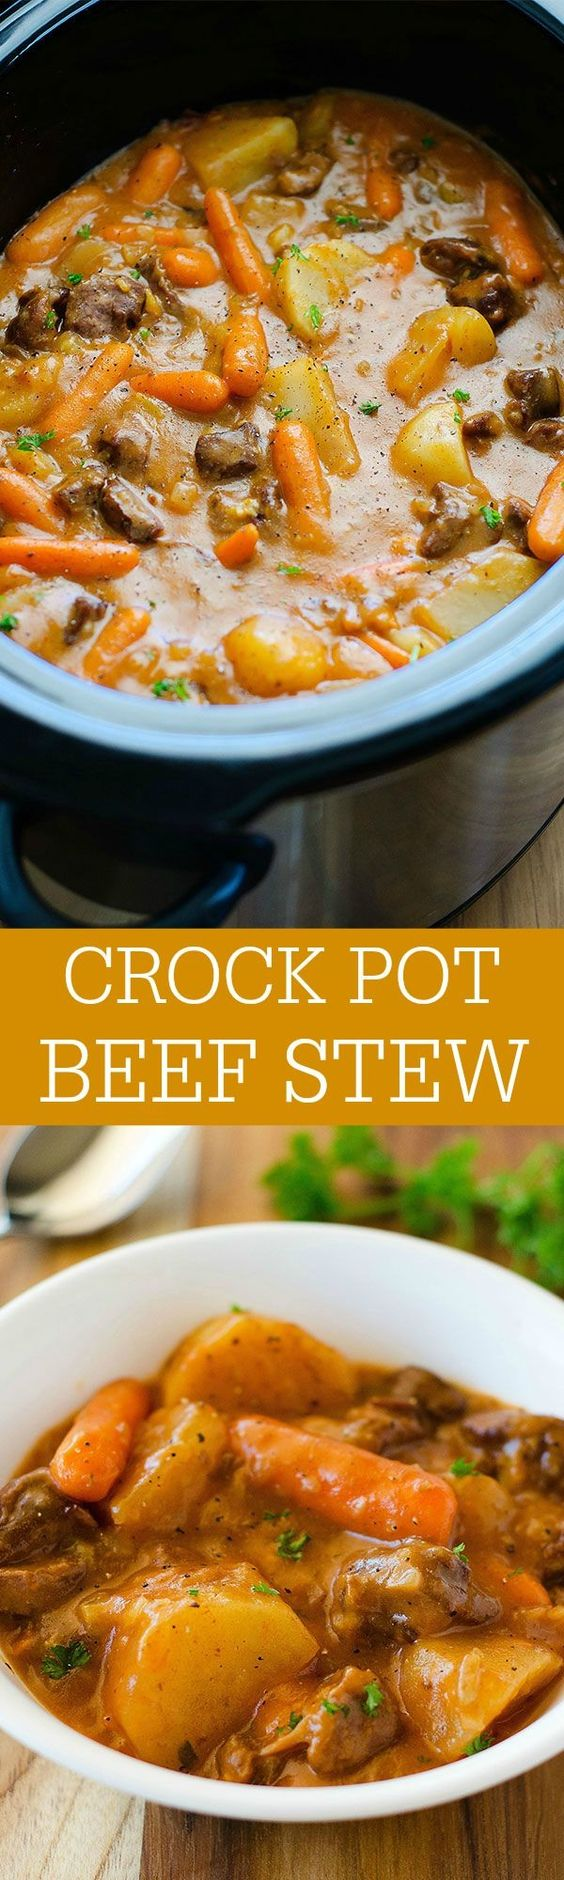 Get the recipe ♥ Crock Pot Beef Stew @recipes_to_go